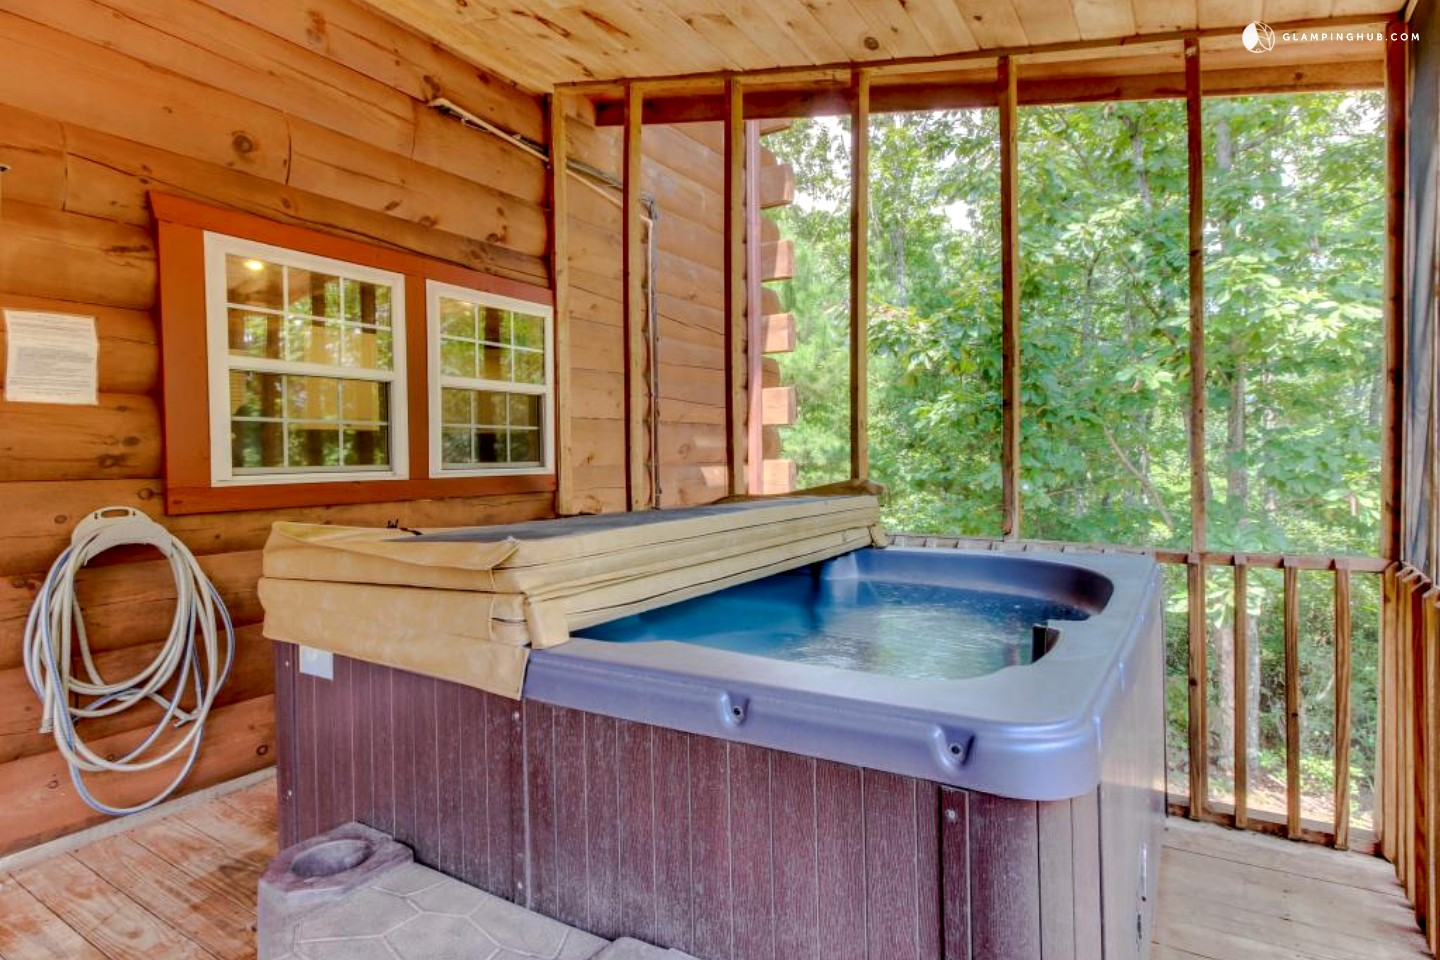 Dog friendly cabin with hot tub near helen georgia for Log cabin with hot tub one night stay